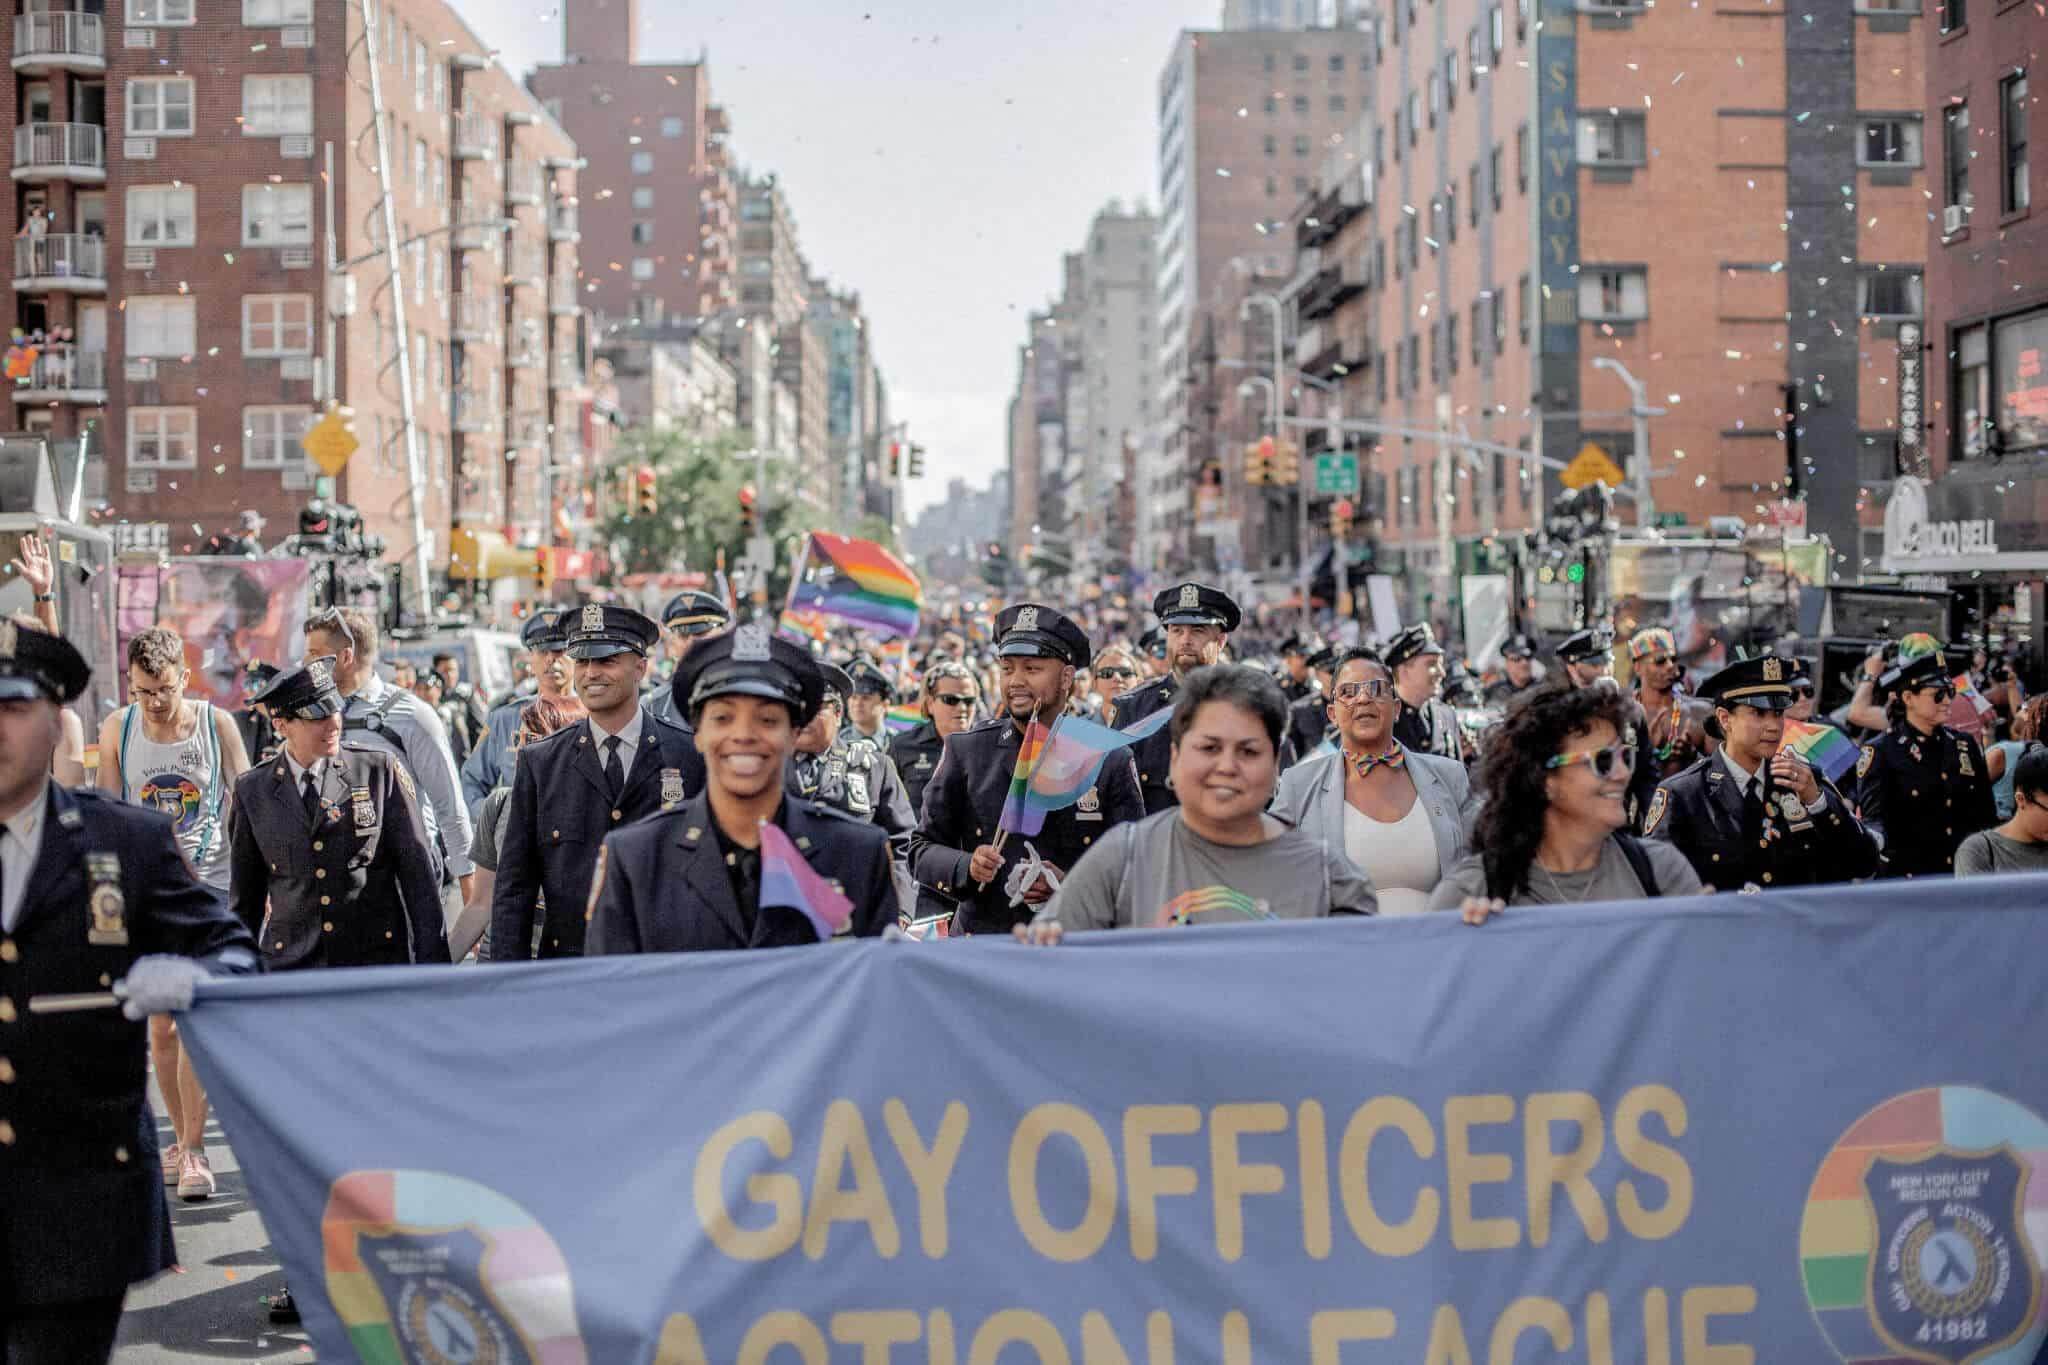 gay police officers at the stonewall riots anniversary